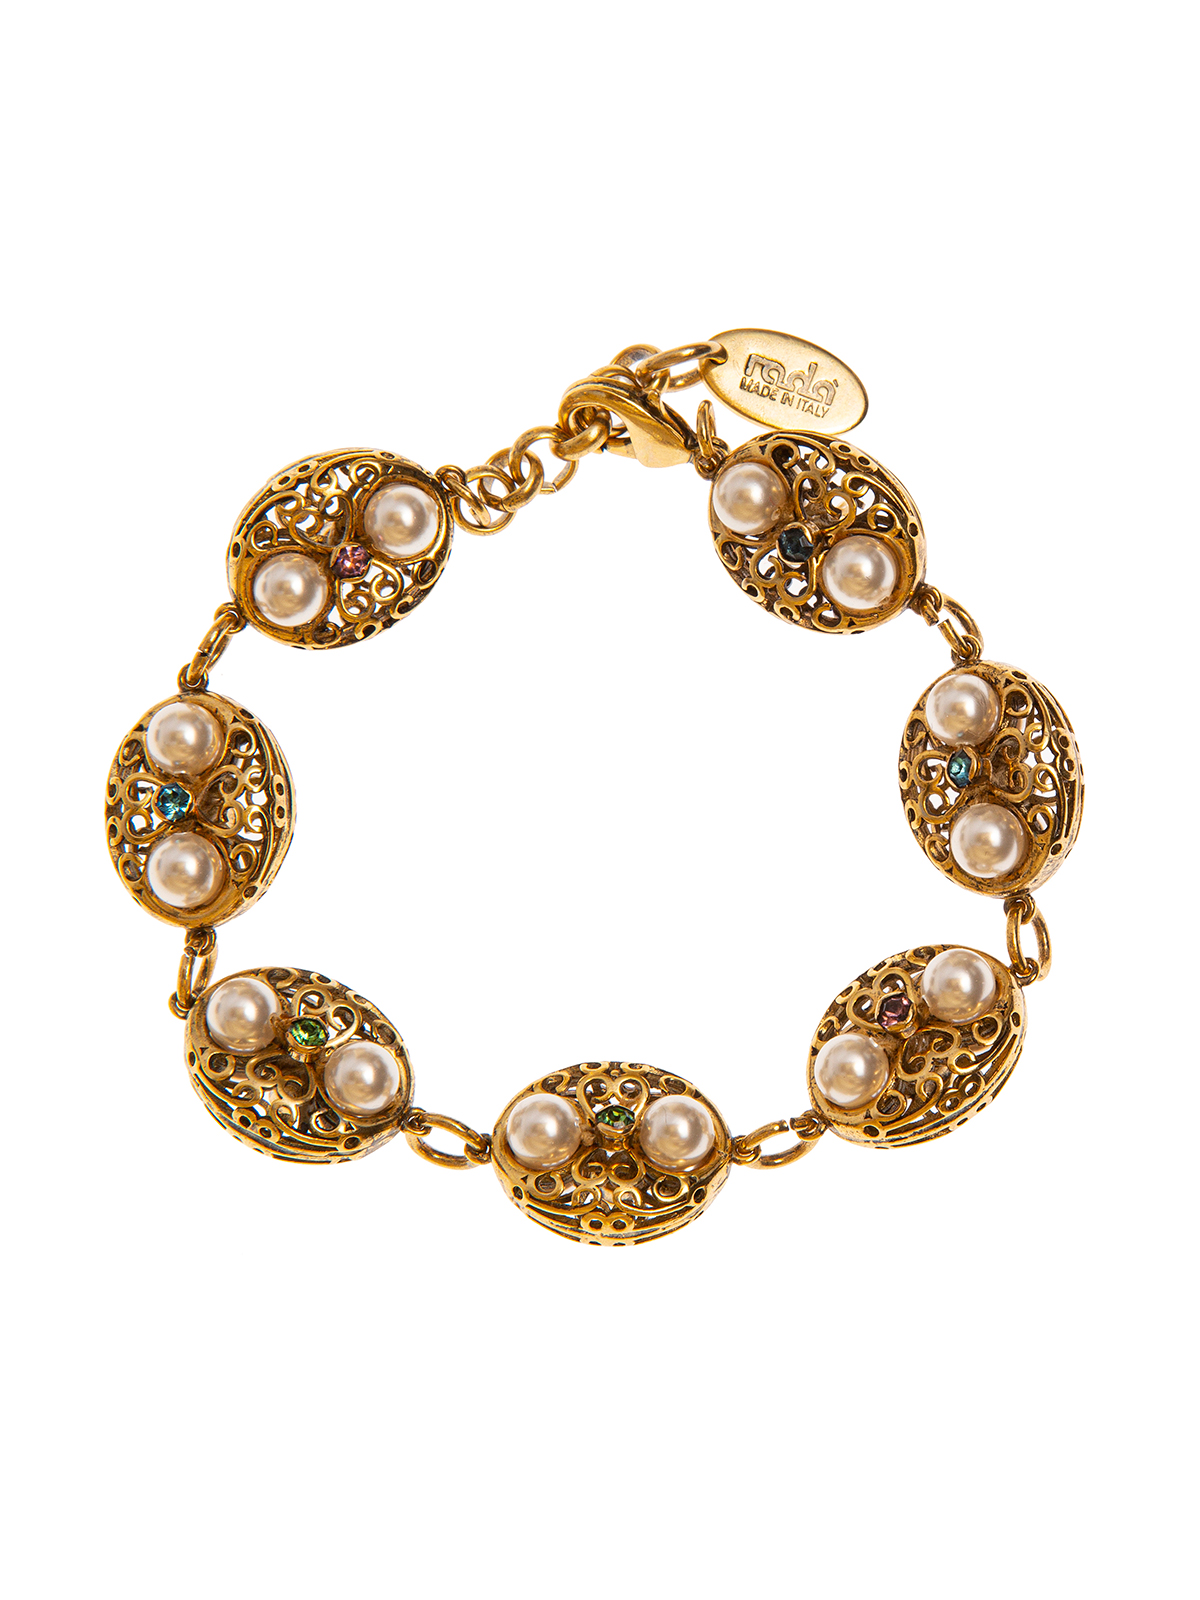 Filigree bracelet embellished with beads and multicolor stones